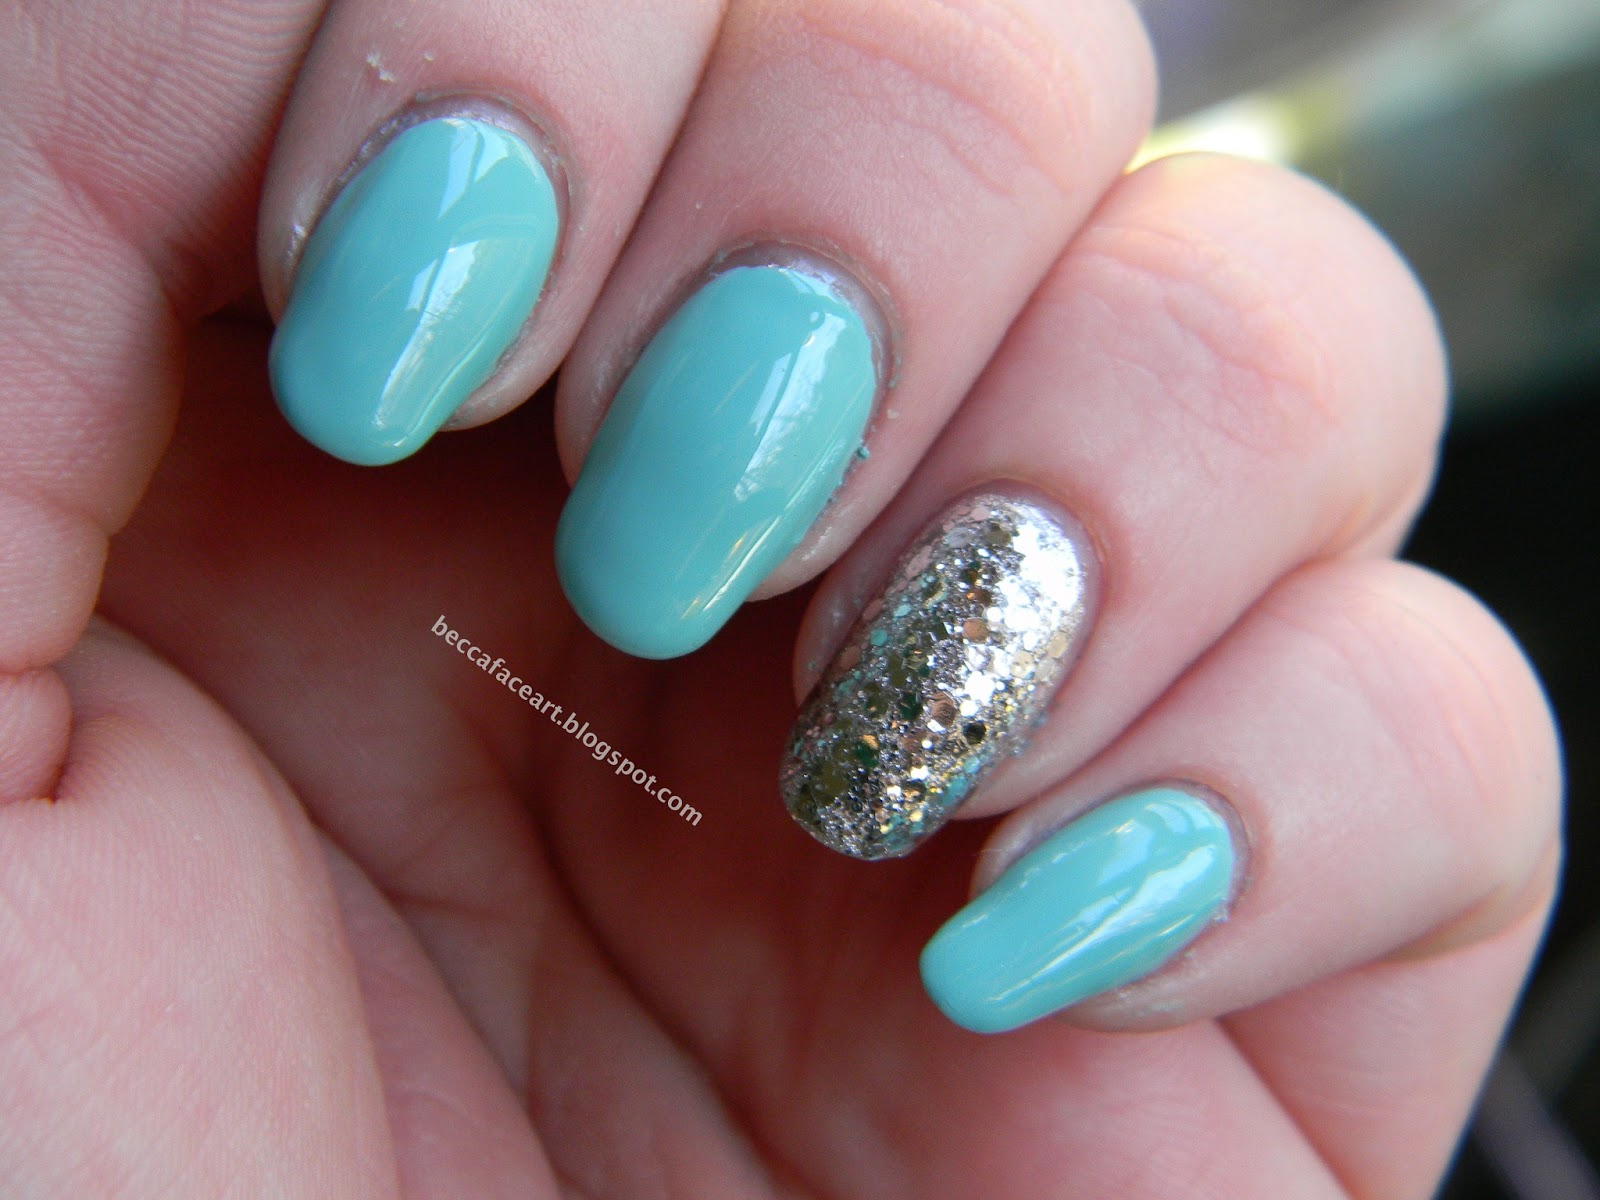 Becca Face Nail Art Turquoise And Silver Glitter Nails